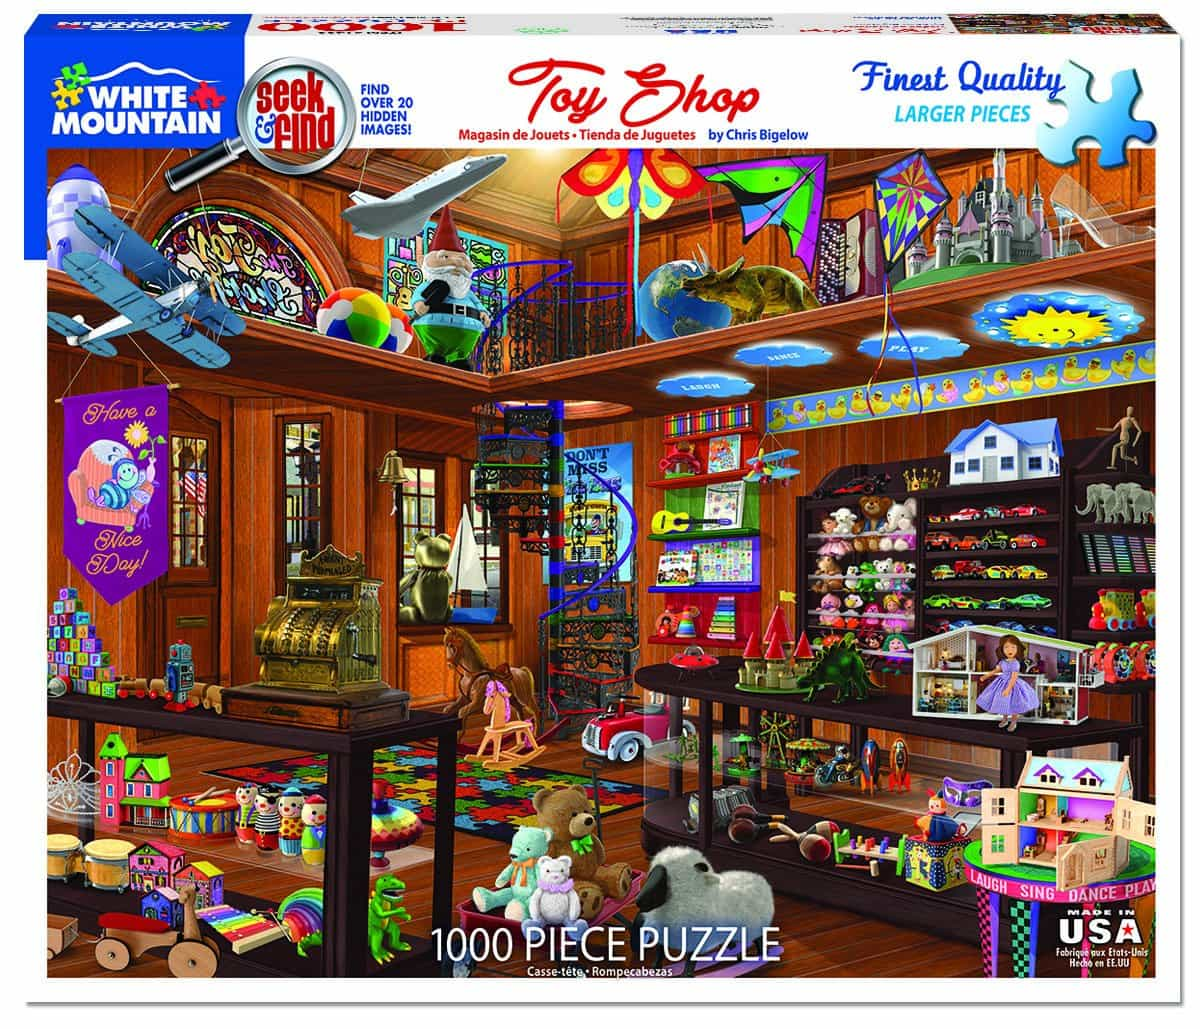 White Mountain Puzzles Craft Room 1000 Piece Jigsaw Puzzle 1372